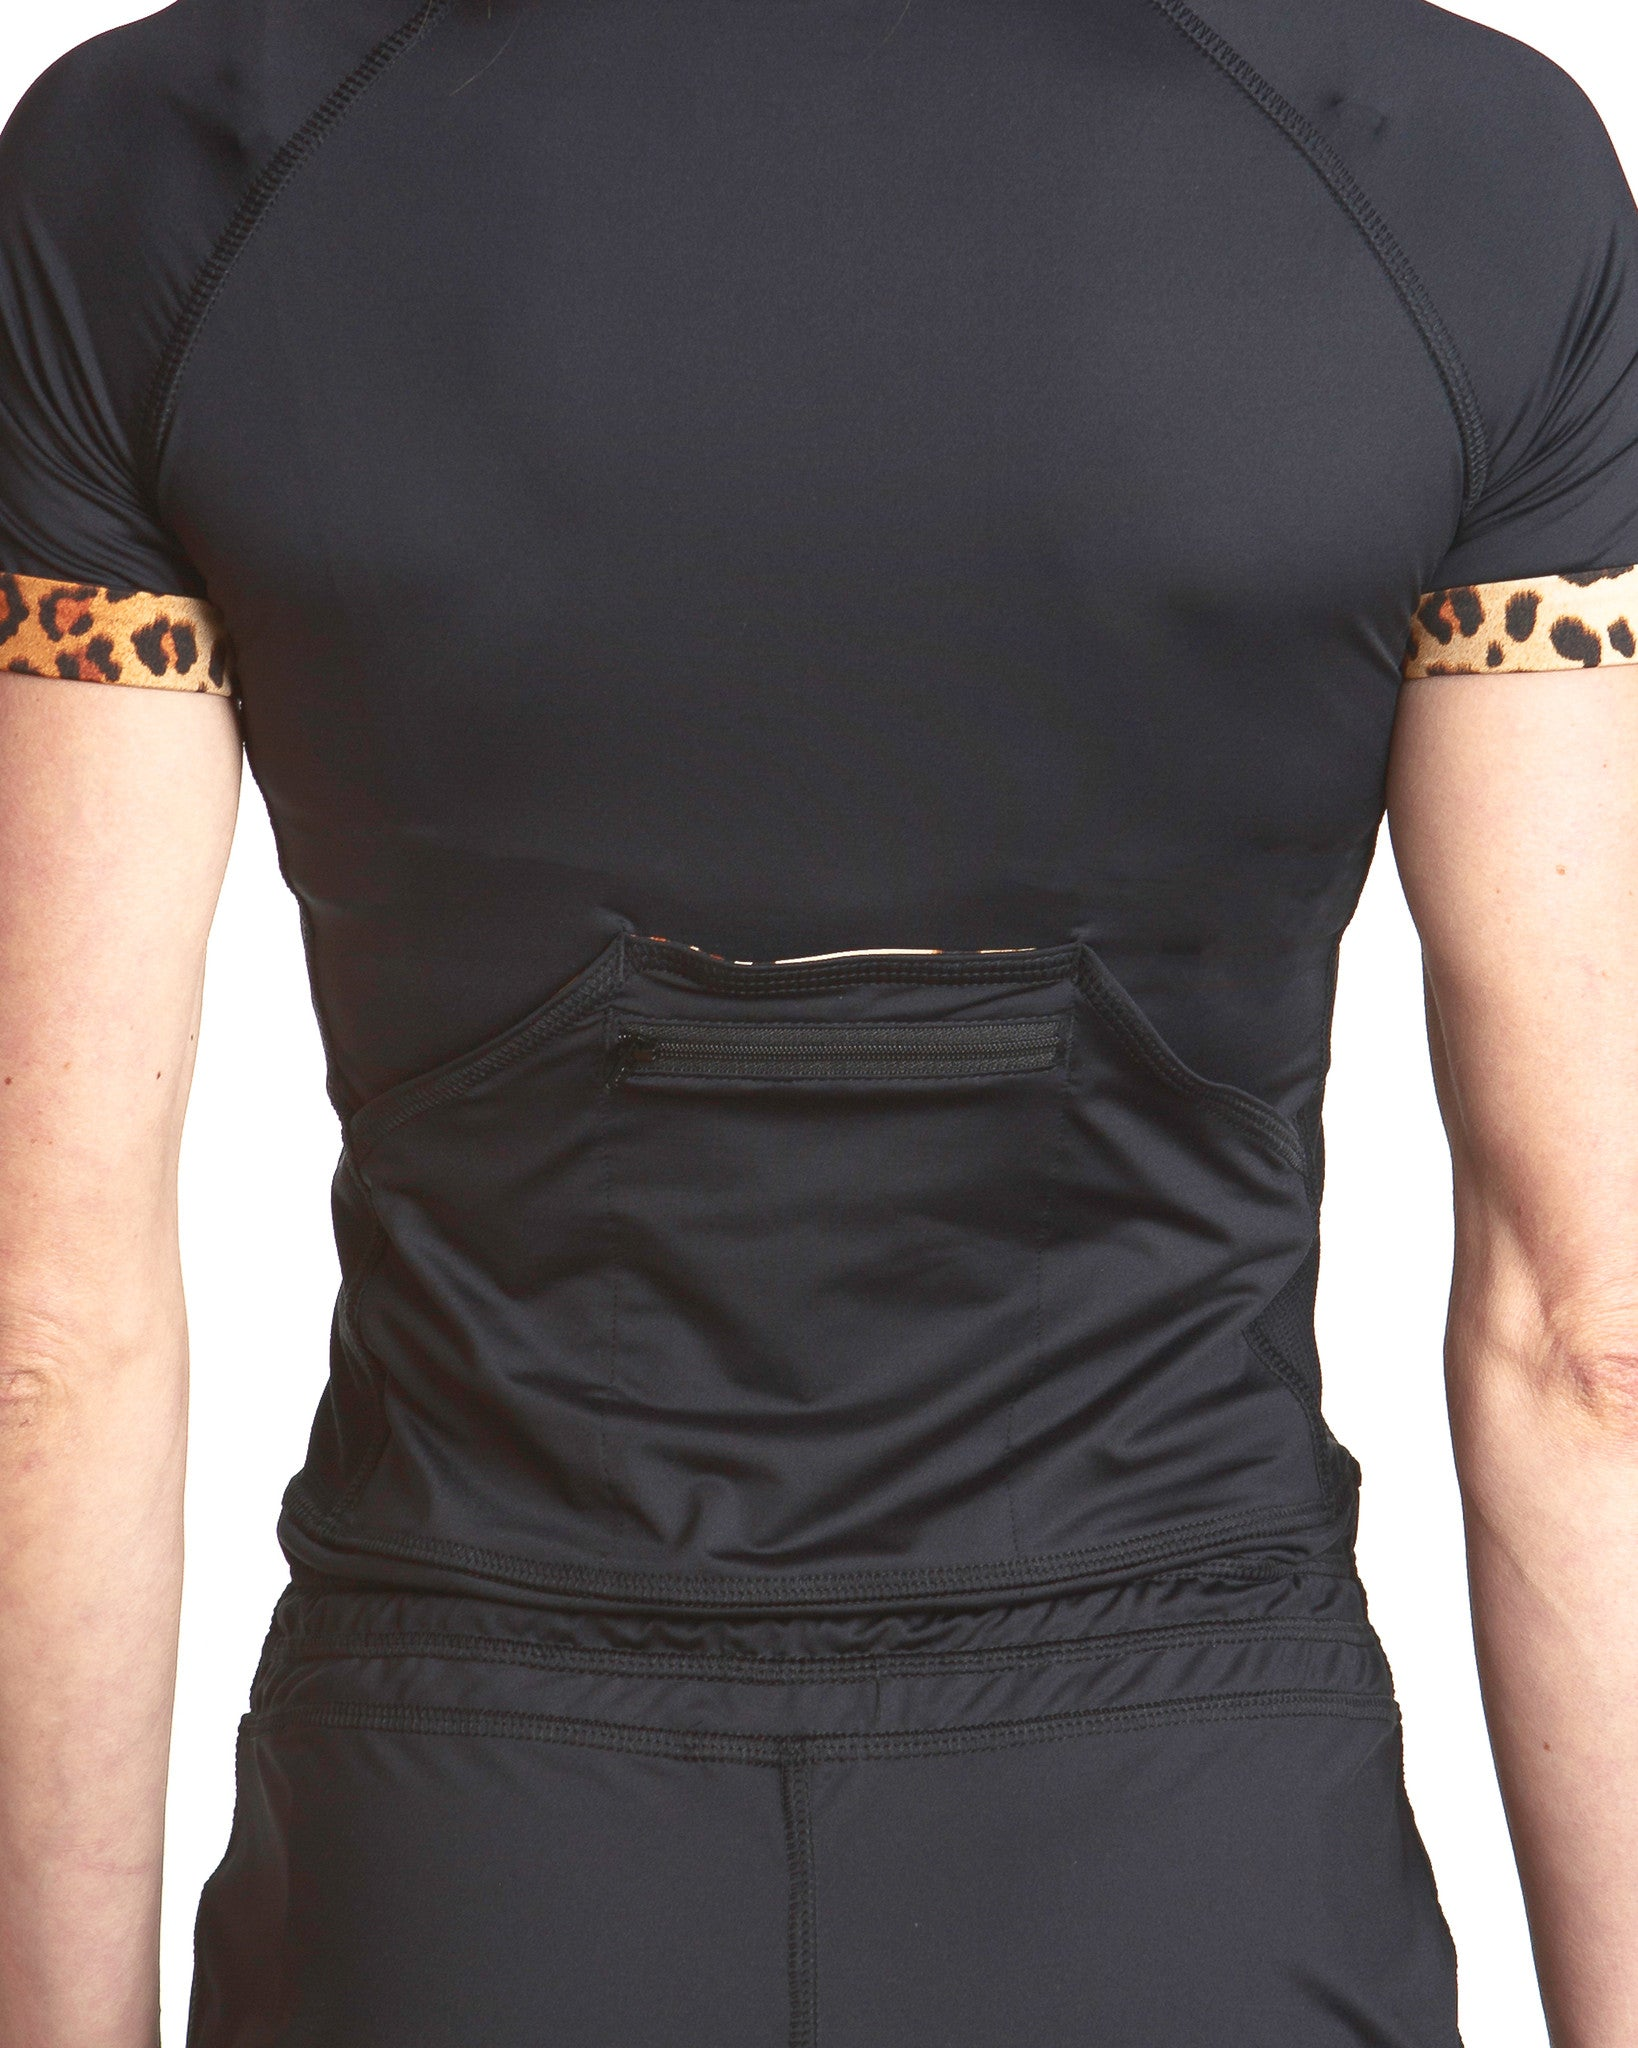 LPRD Black Onesie Jumpsuit | Back detail of zip-pockets and leopard turn-ups